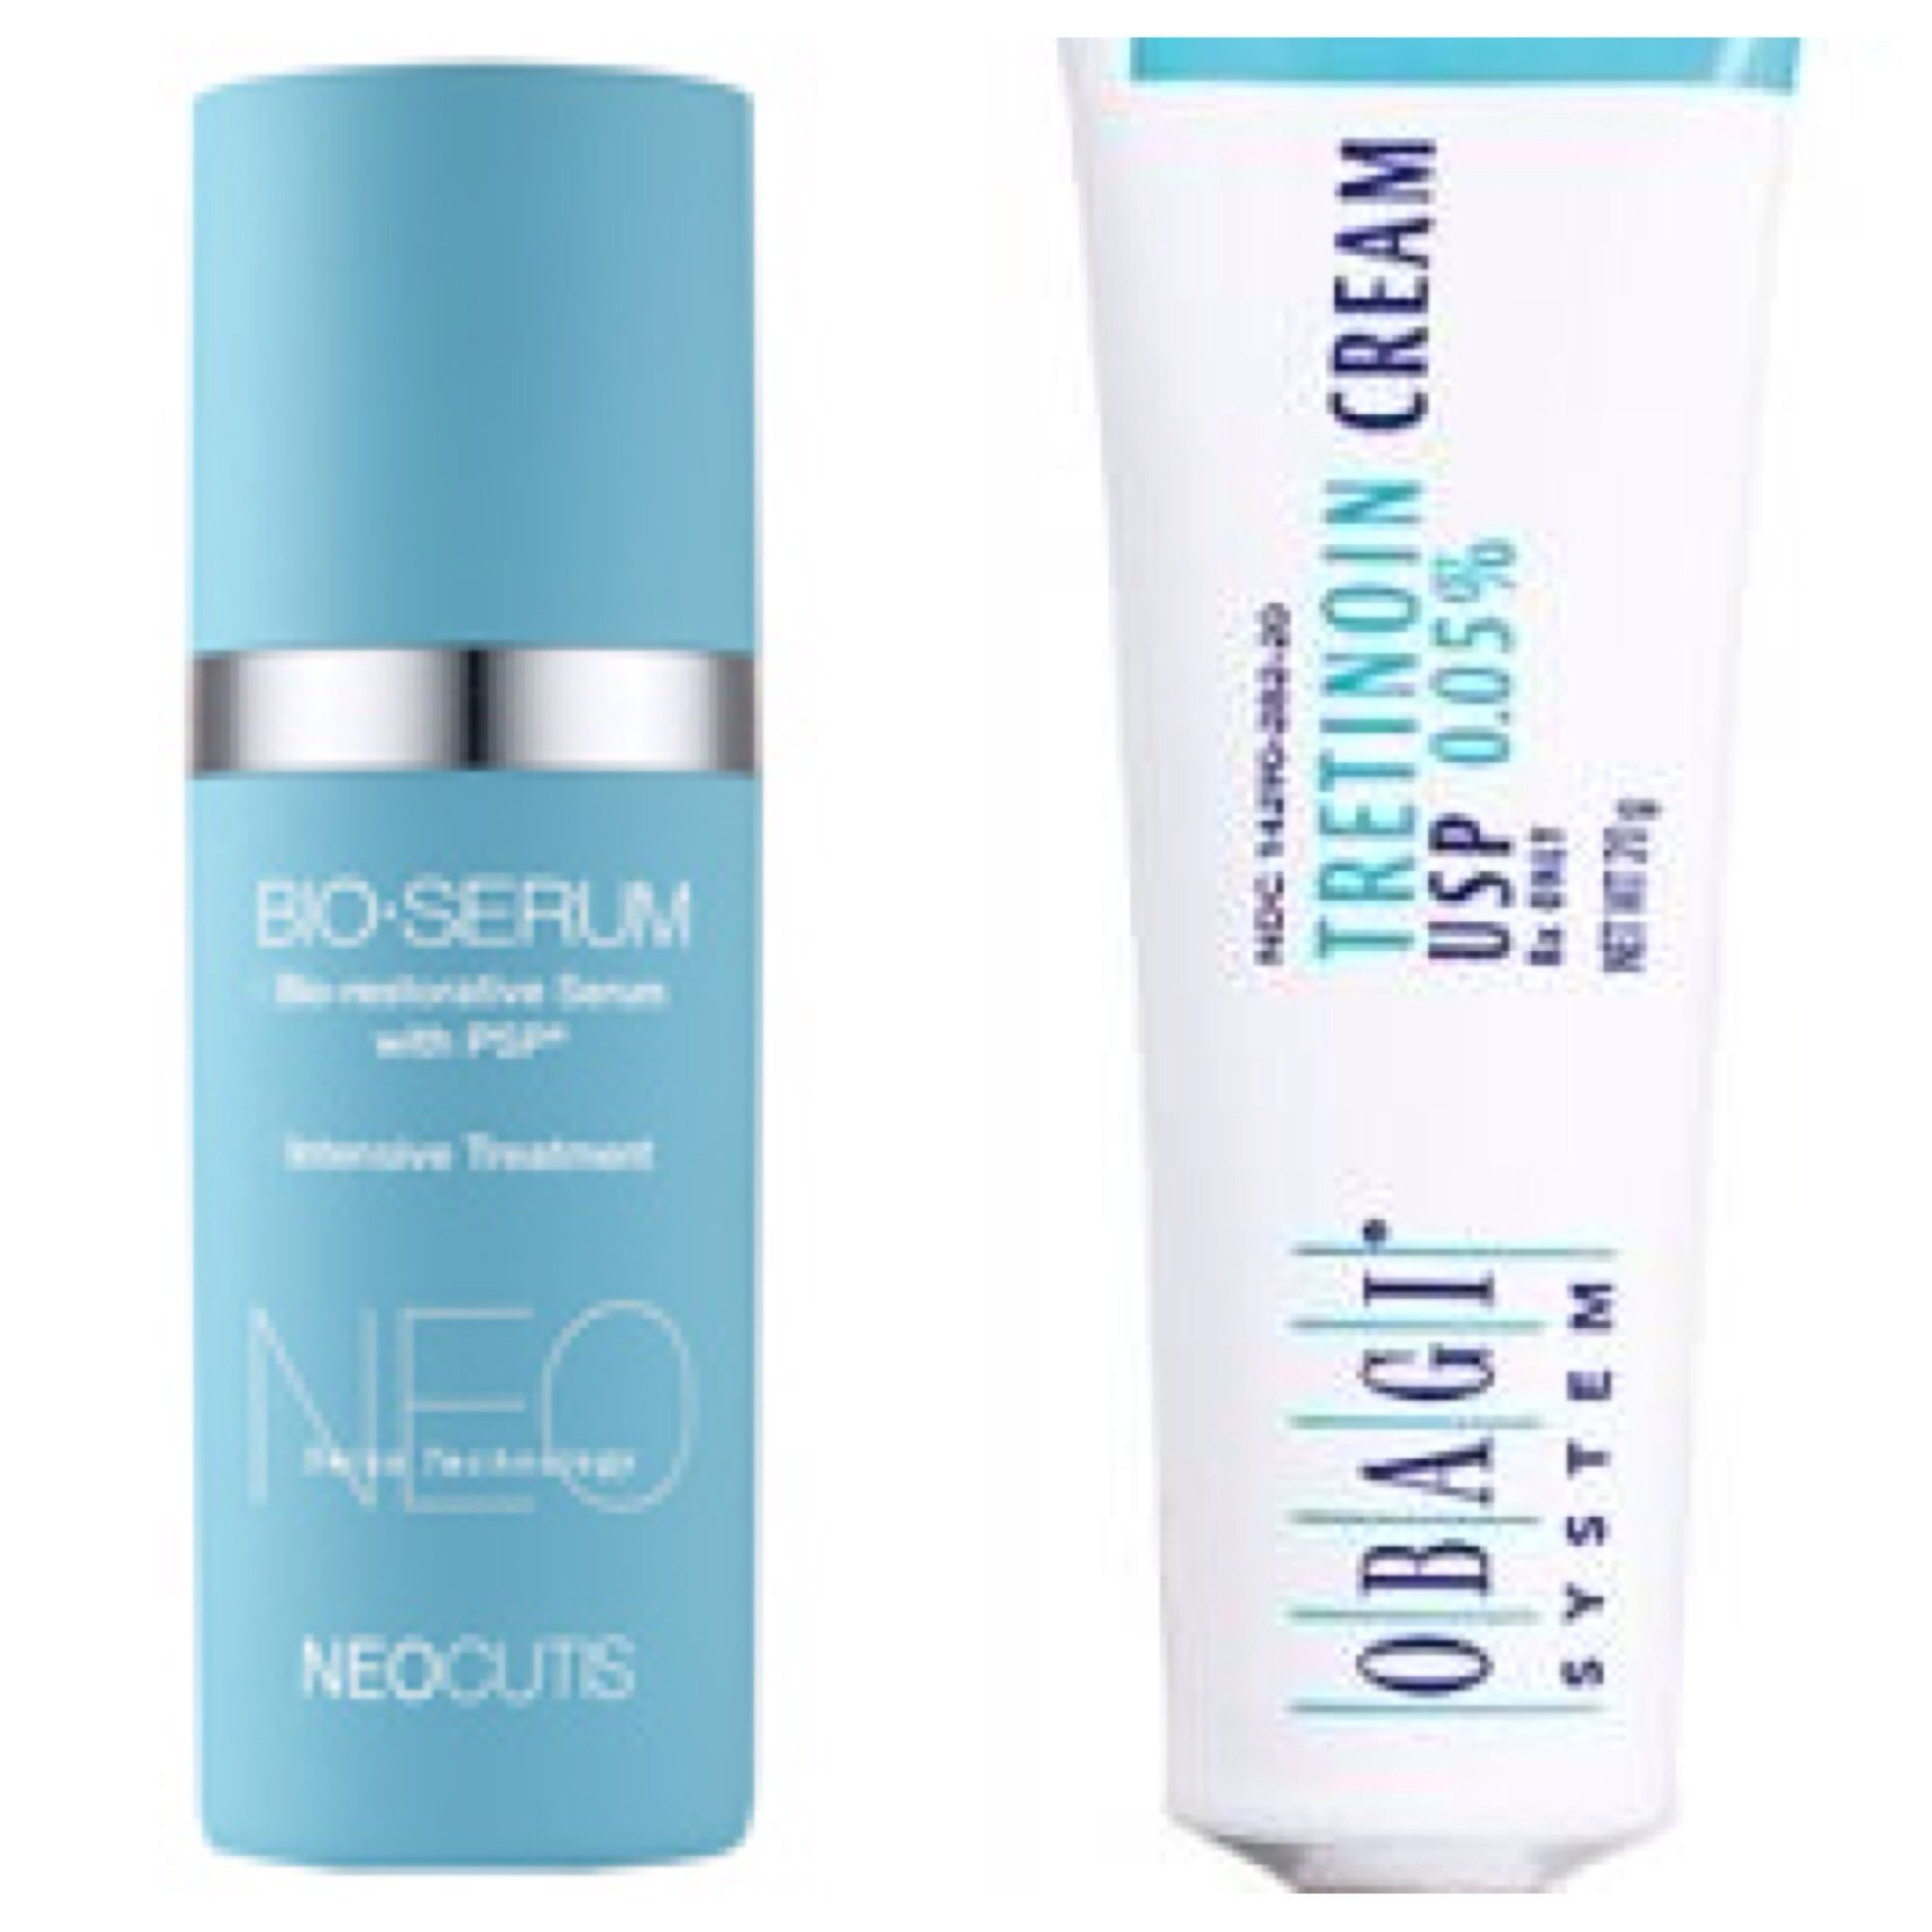 SKIN COCKTAILS- cocktails in the morning and cocktails in the evening! We love to mix products for delivering maximum active ingredients to the skin. We are loving Neocutis Bioserum containing growth factors mixed with tretinoin (retin-A). Actives work very differently and this #BarbaCocktail is great for creating maximal collagen synthesis. The vehicles also go very well together: Bioserum is moisturizing, offsetting the dryness and irritation that is common when using a retinoid…